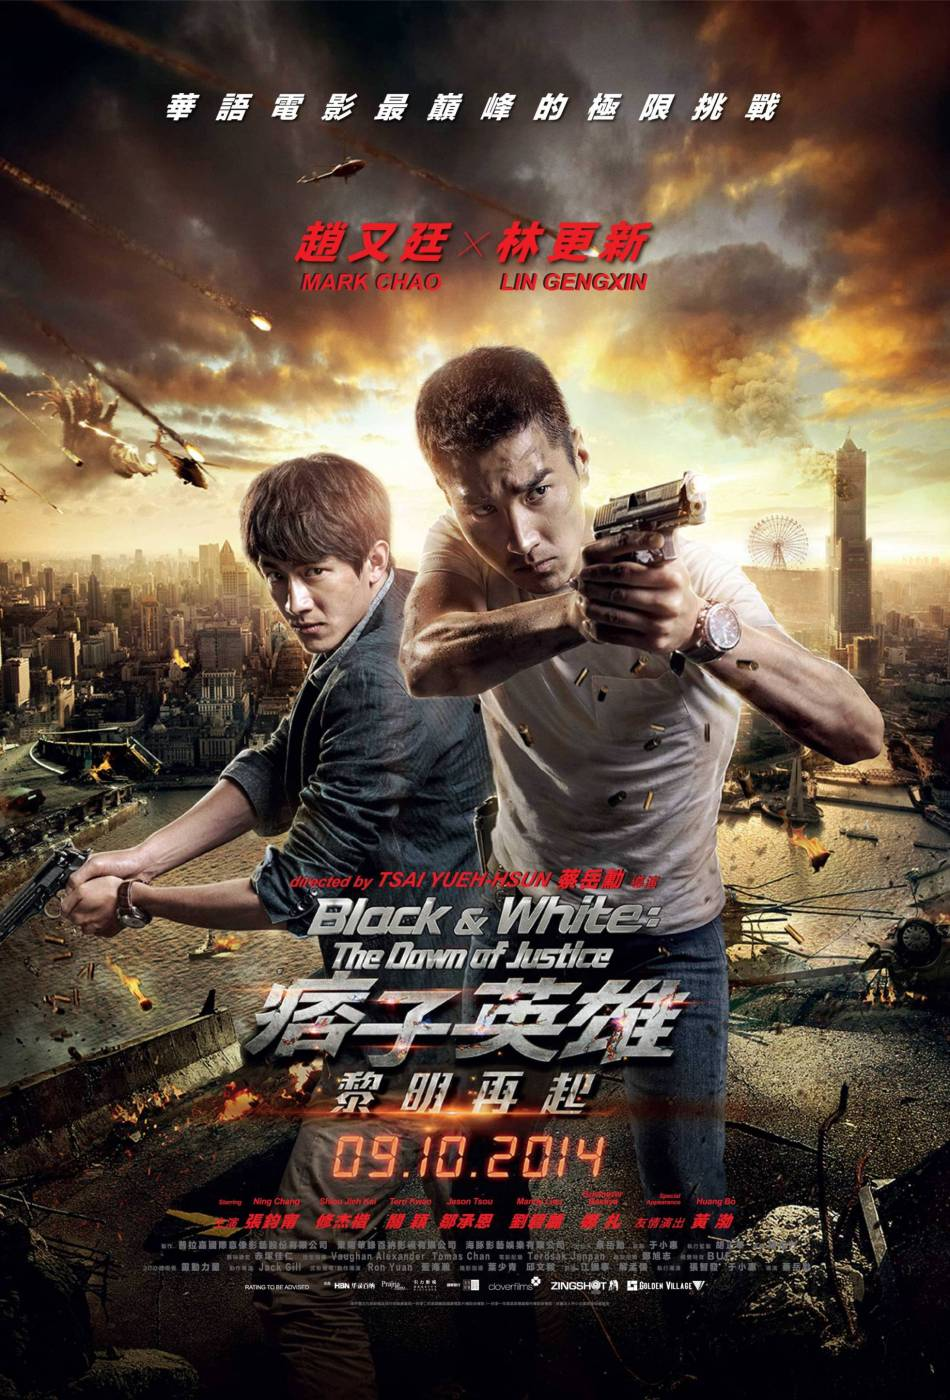 Black & White: The Dawn of Justice 痞子英雄:黎明再起 Open Oct 09 !